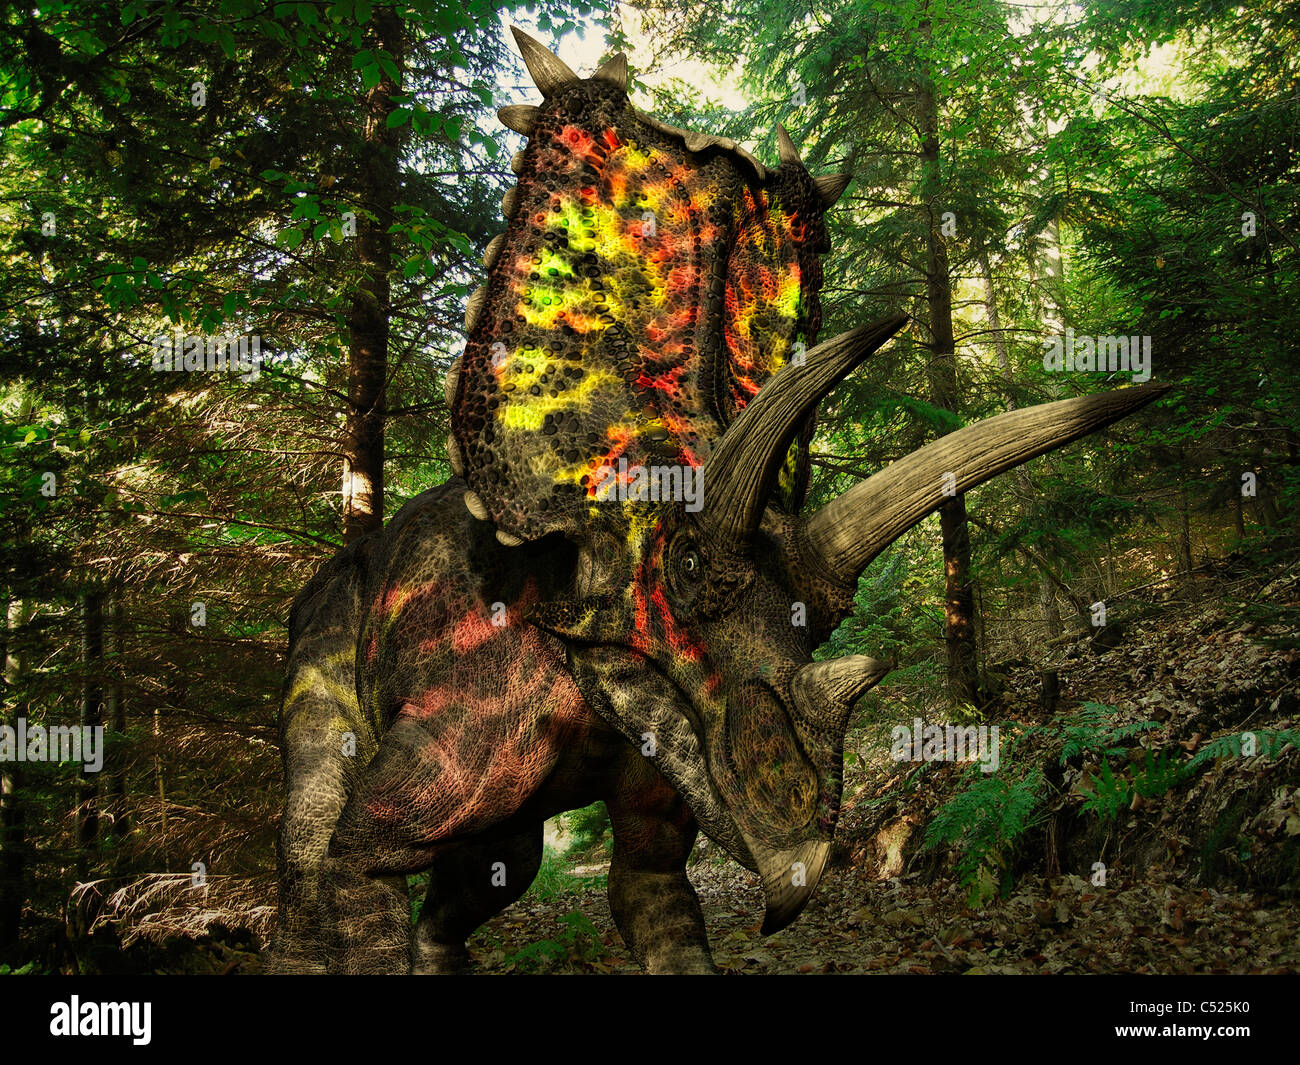 A colorful Pentaceratops wanders a Cretaceious forest. - Stock Image